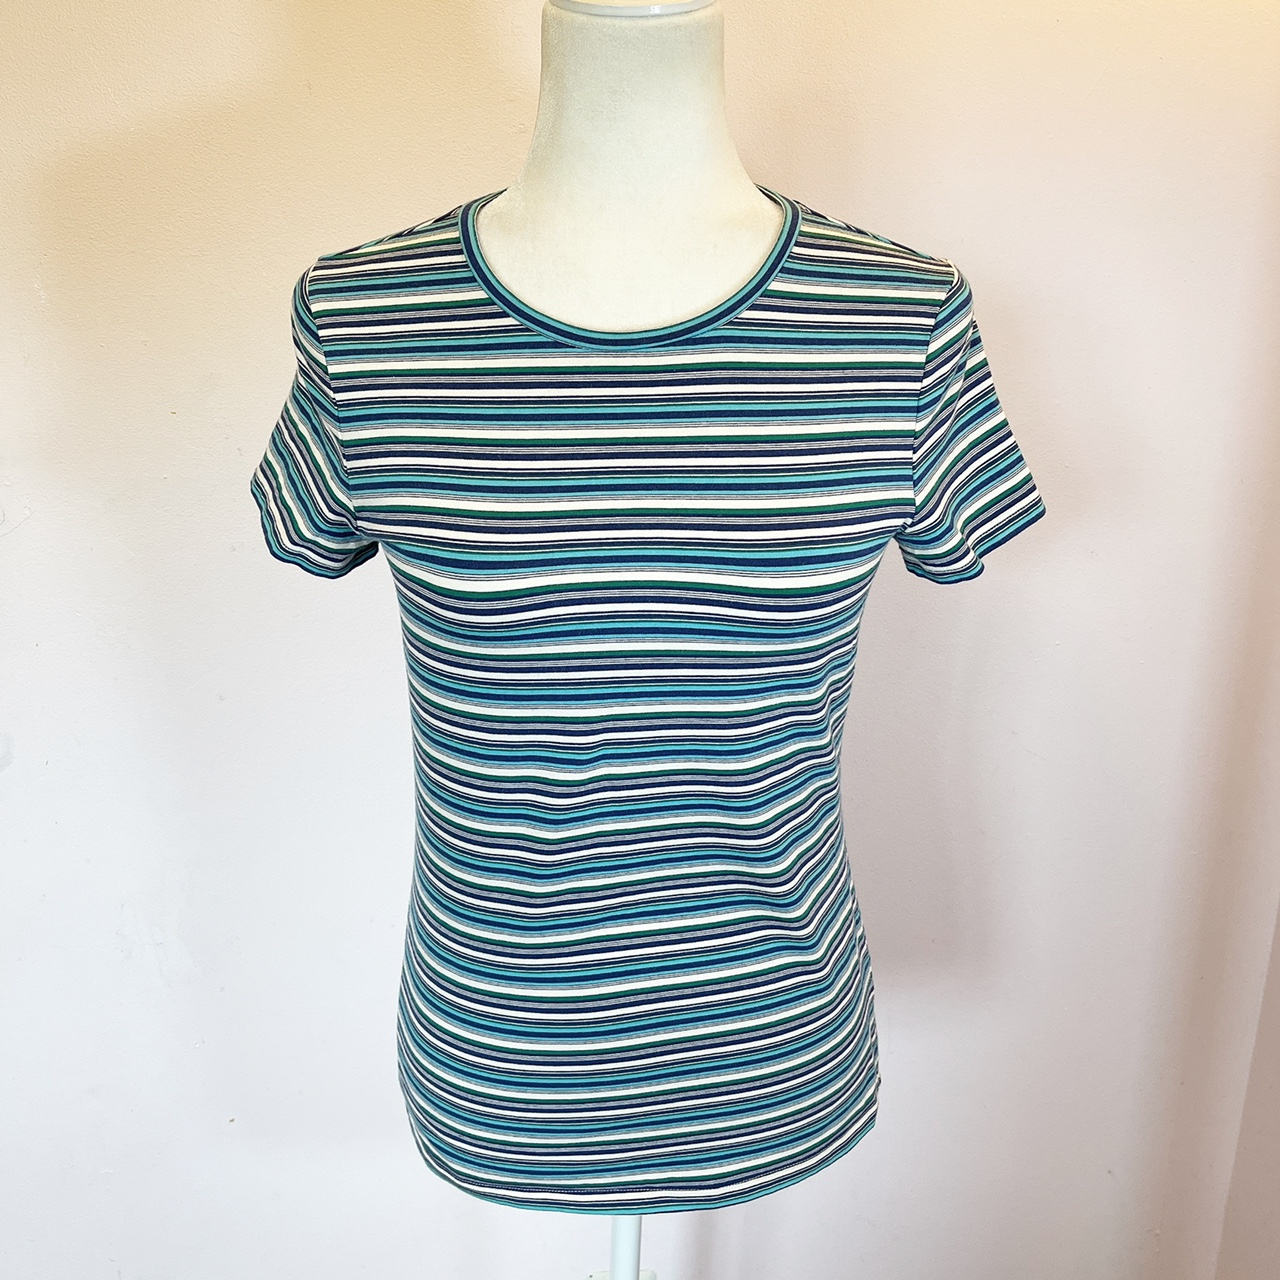 Product Image 1 - Talbots Short Sleeve Top Woman.